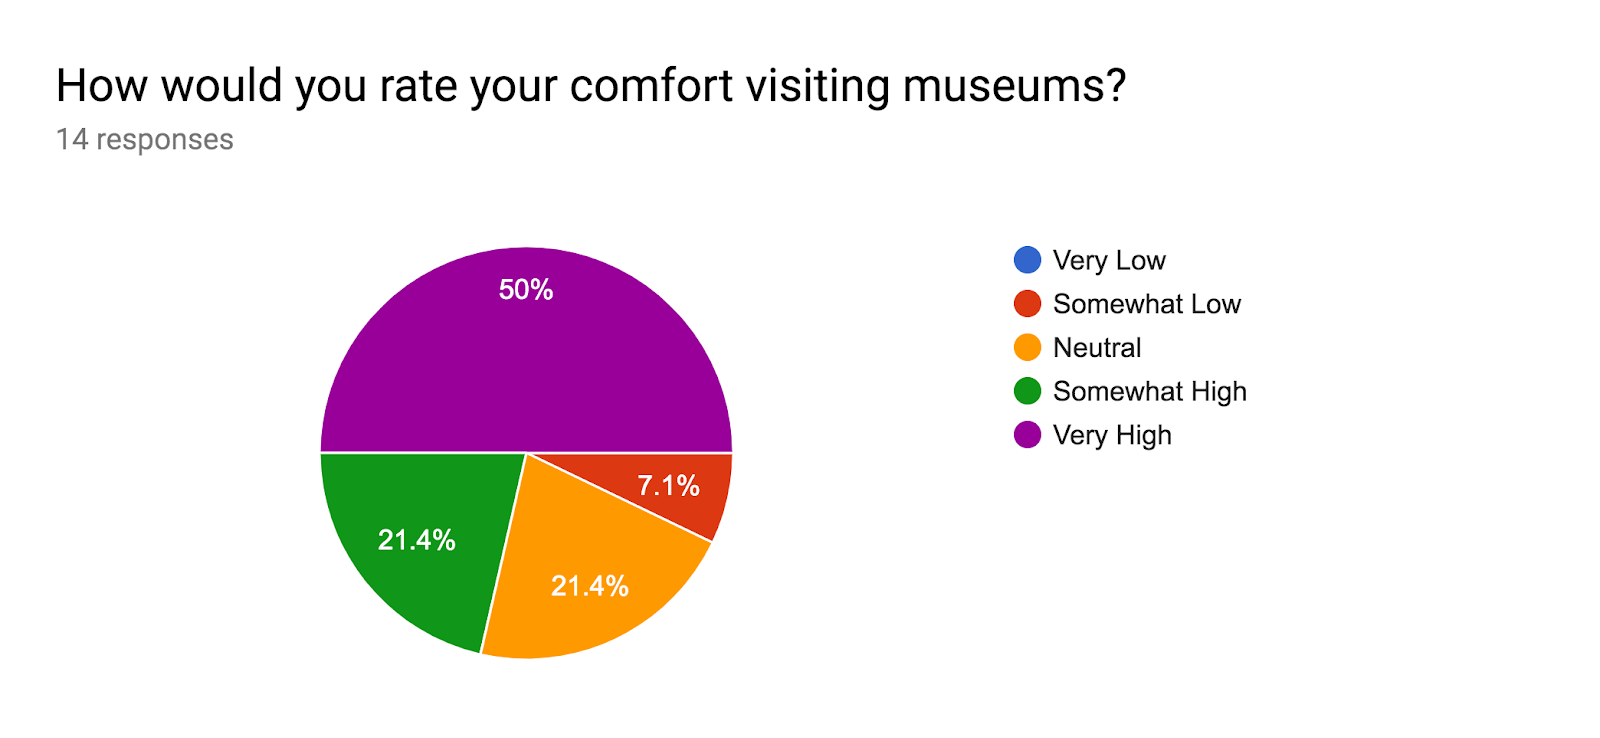 Forms response chart. Question title: How would you rate your comfort visiting museums?. Number of responses: 14 responses.